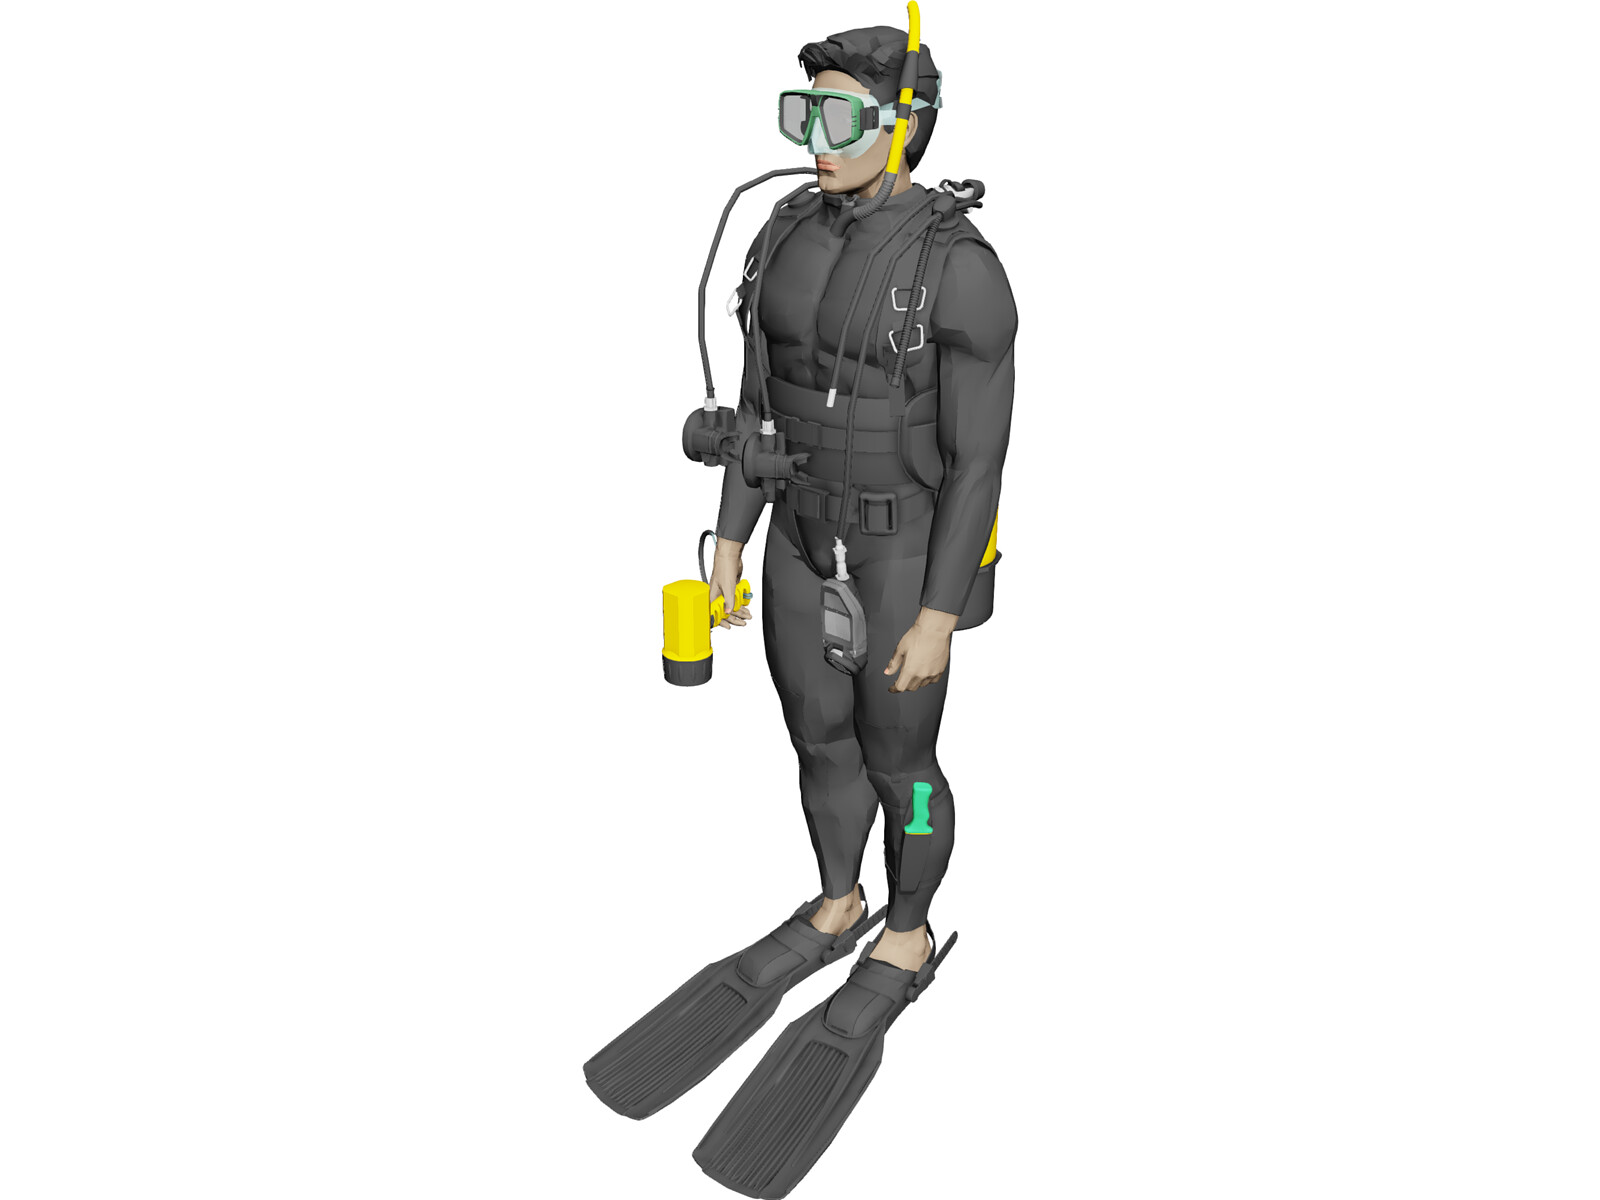 2204758 furthermore 1779037 32611796765 together with If Your Scuba Diving Instructor Looks Like This Its Time To Worry besides Deep as well 370516016147. on scuba tank top